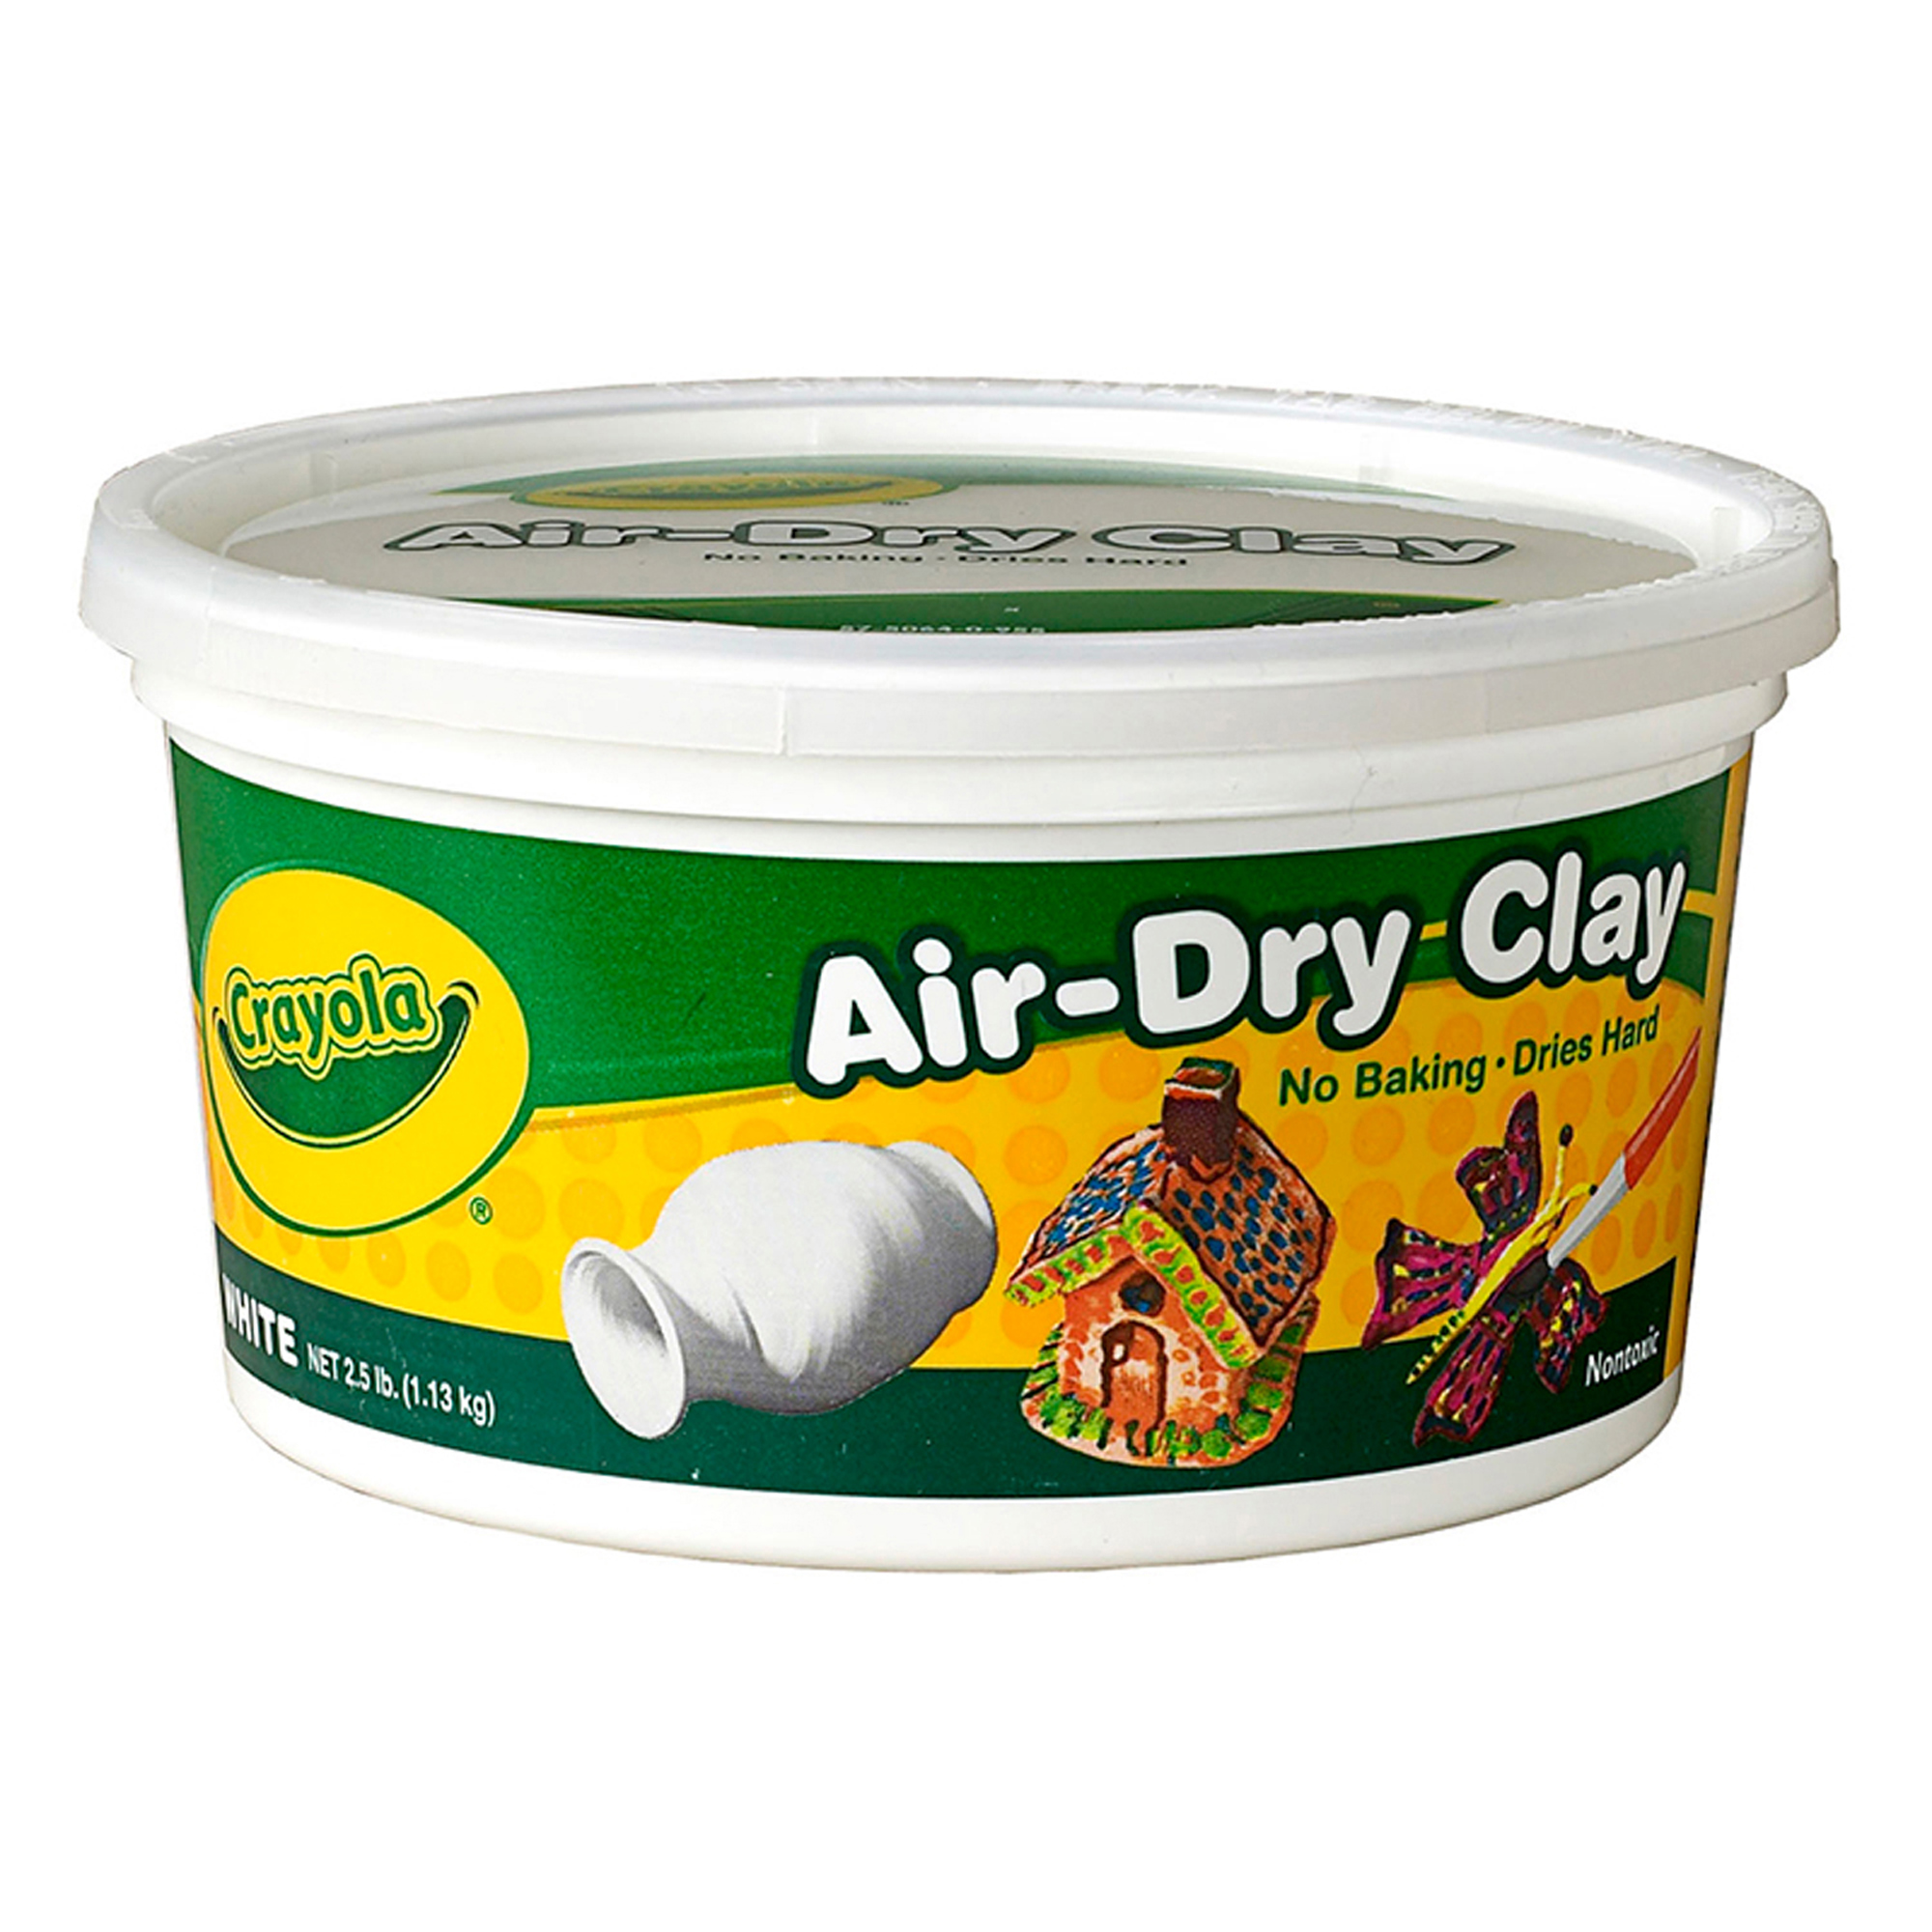 Crayola® Air-Dry Clay, White, 2.5 lb. Per Pack, 4 Packs